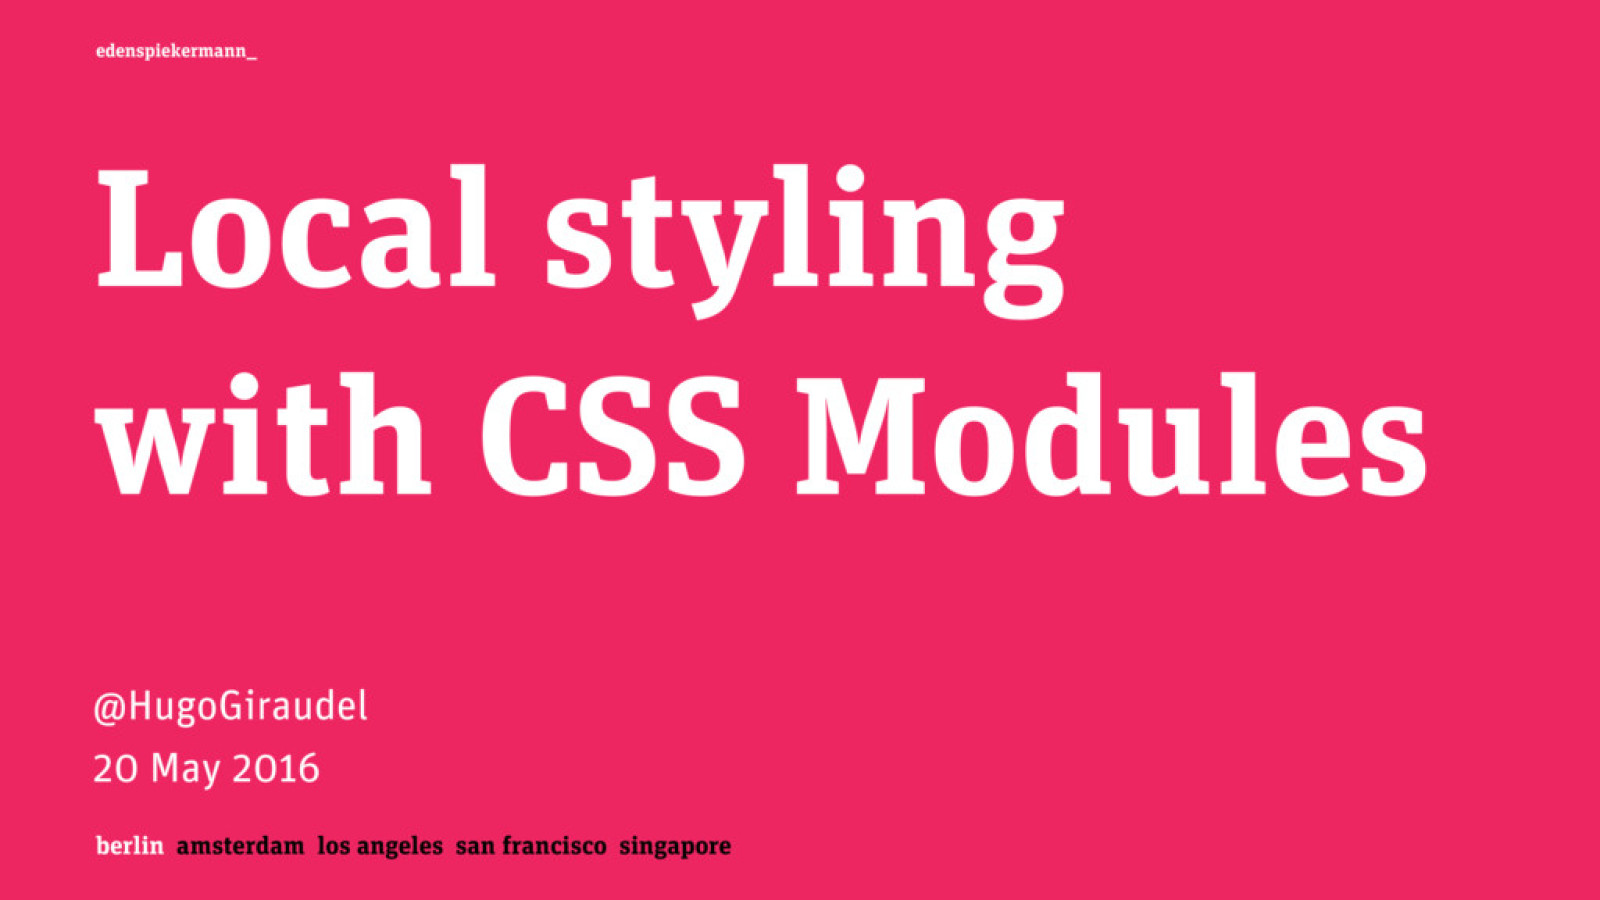 Local styling with CSS Modules